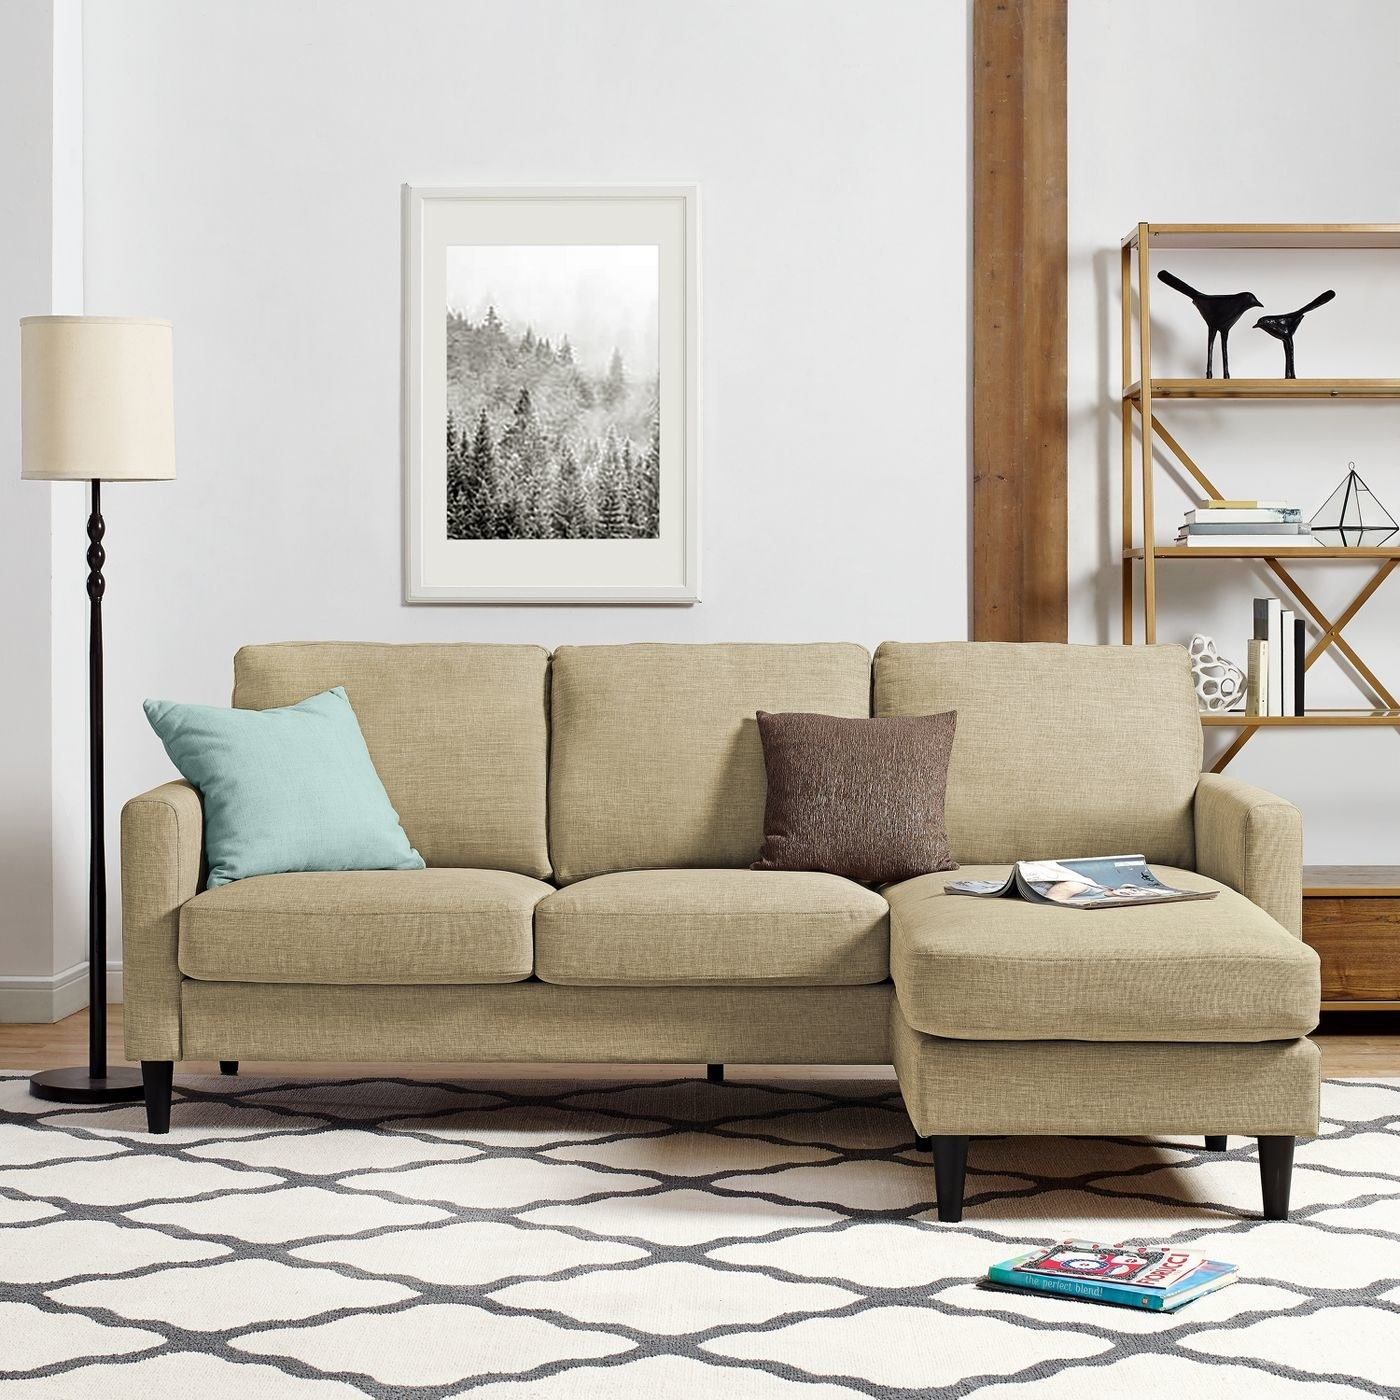 lifestyle photo of the couch in beige with throw pillows and magazine on the chaise